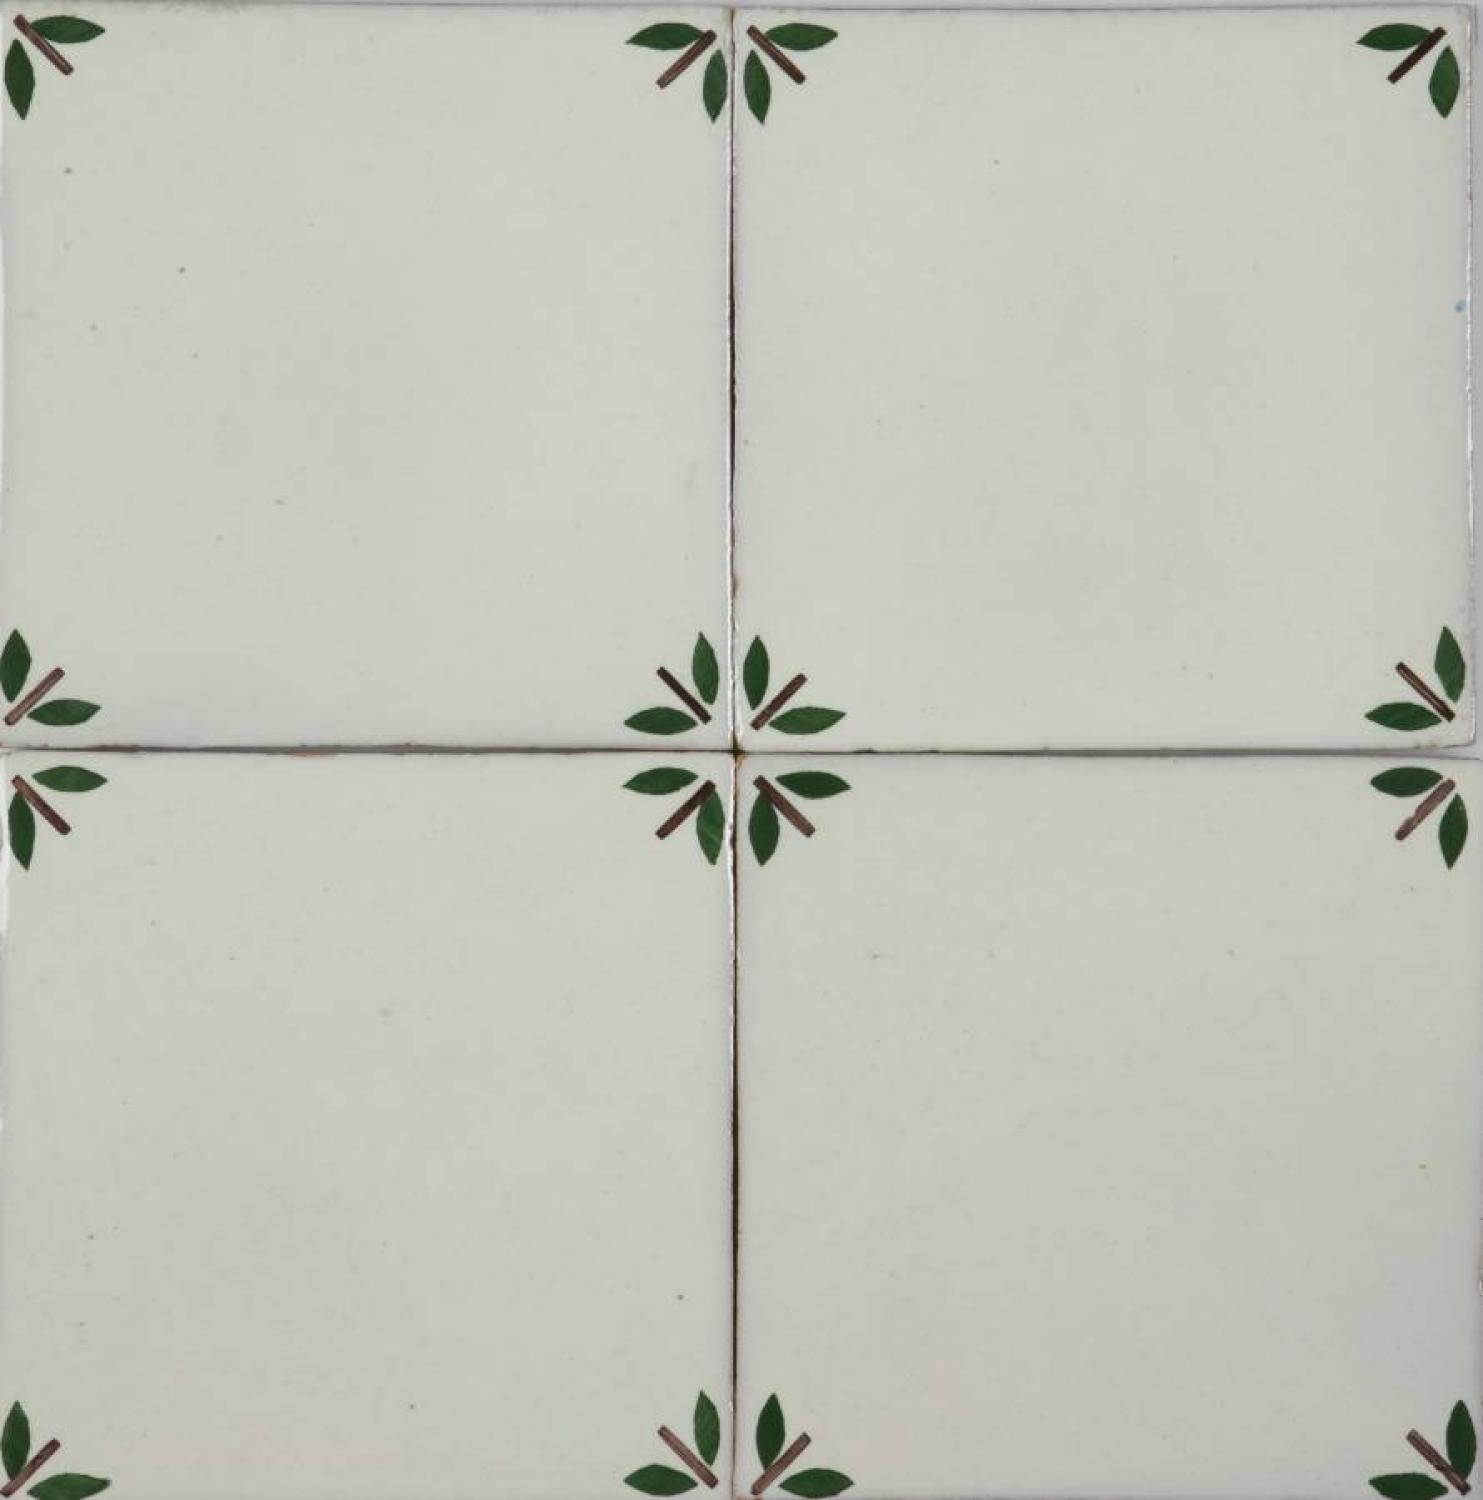 Rosa/Green Bolotas Blanc 140x140mm